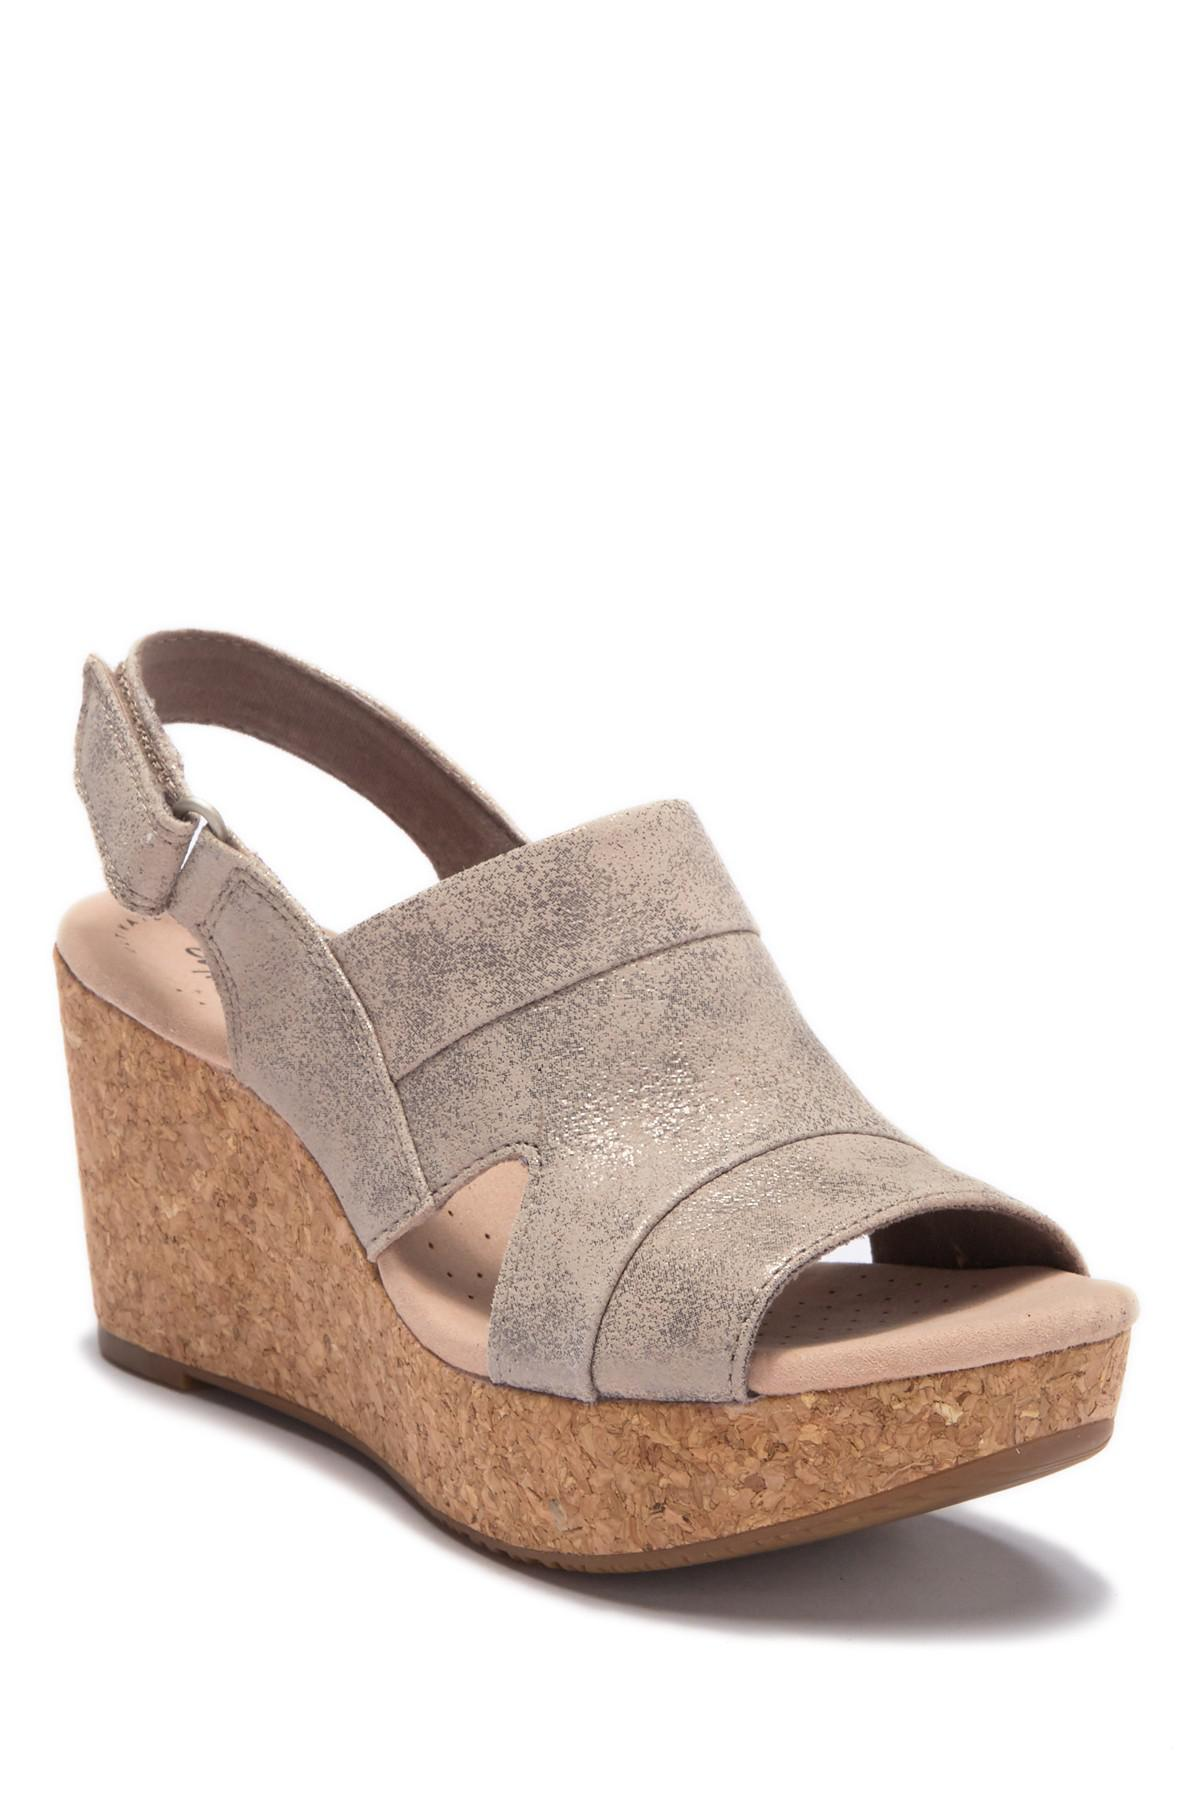 e73ec39b7e0 Clarks. Women s Brown Annadel Ivory Wedge Sandal - Wide Widths Available